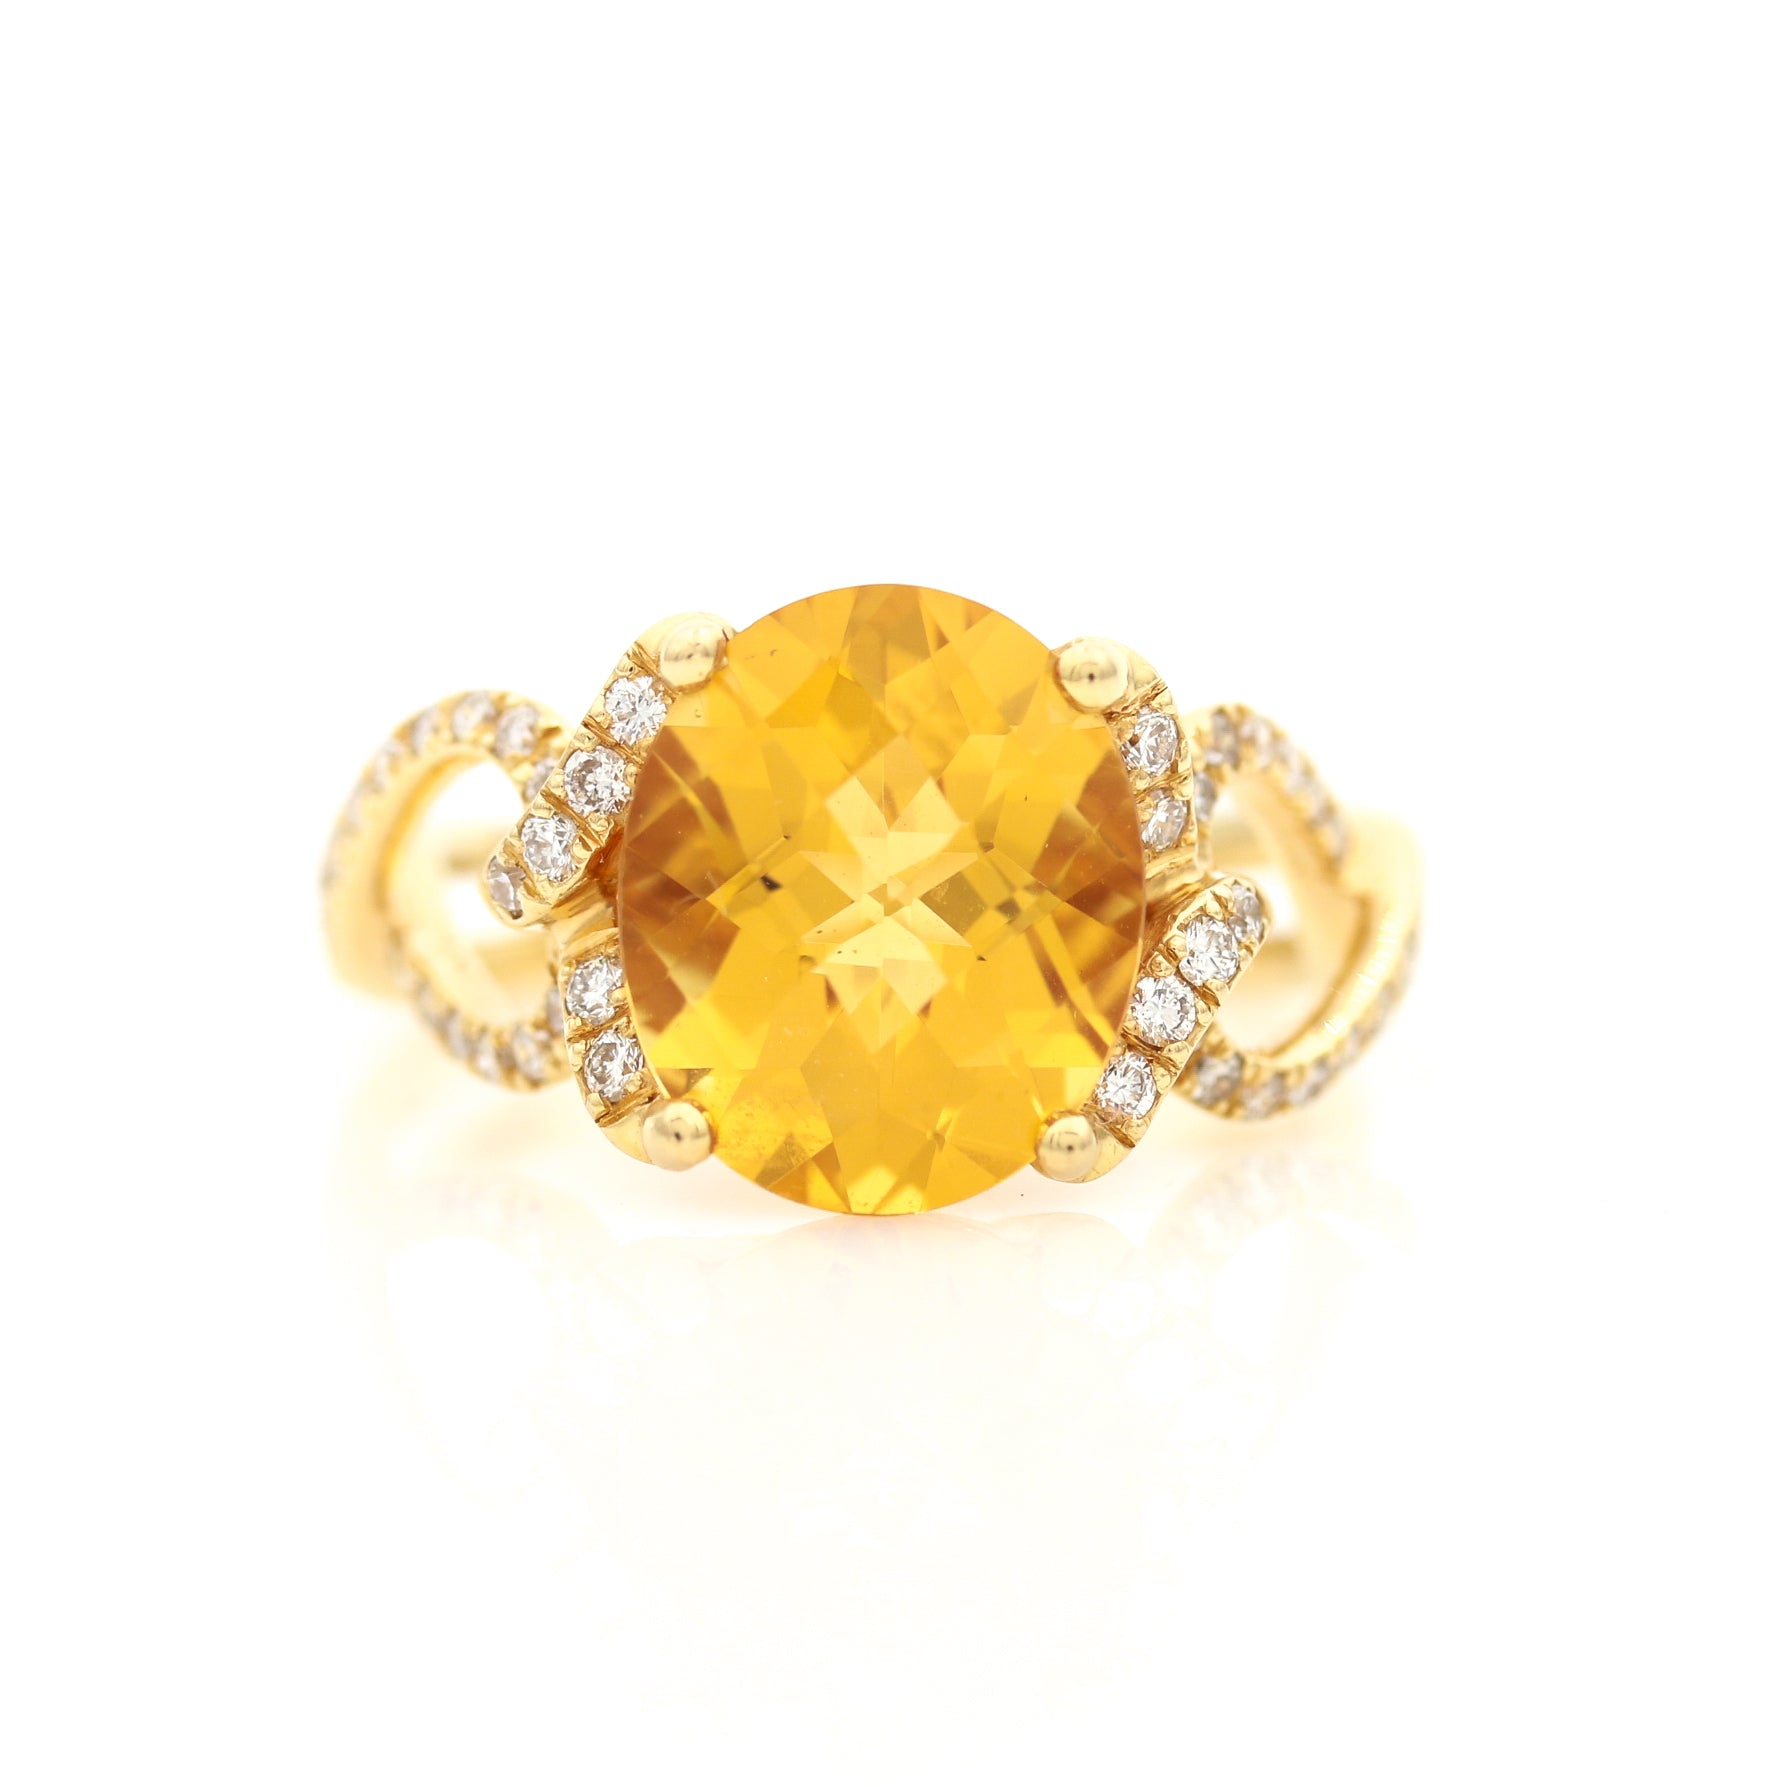 Citrine and Diamonds in Yellow Gold Ring - Sindur Style